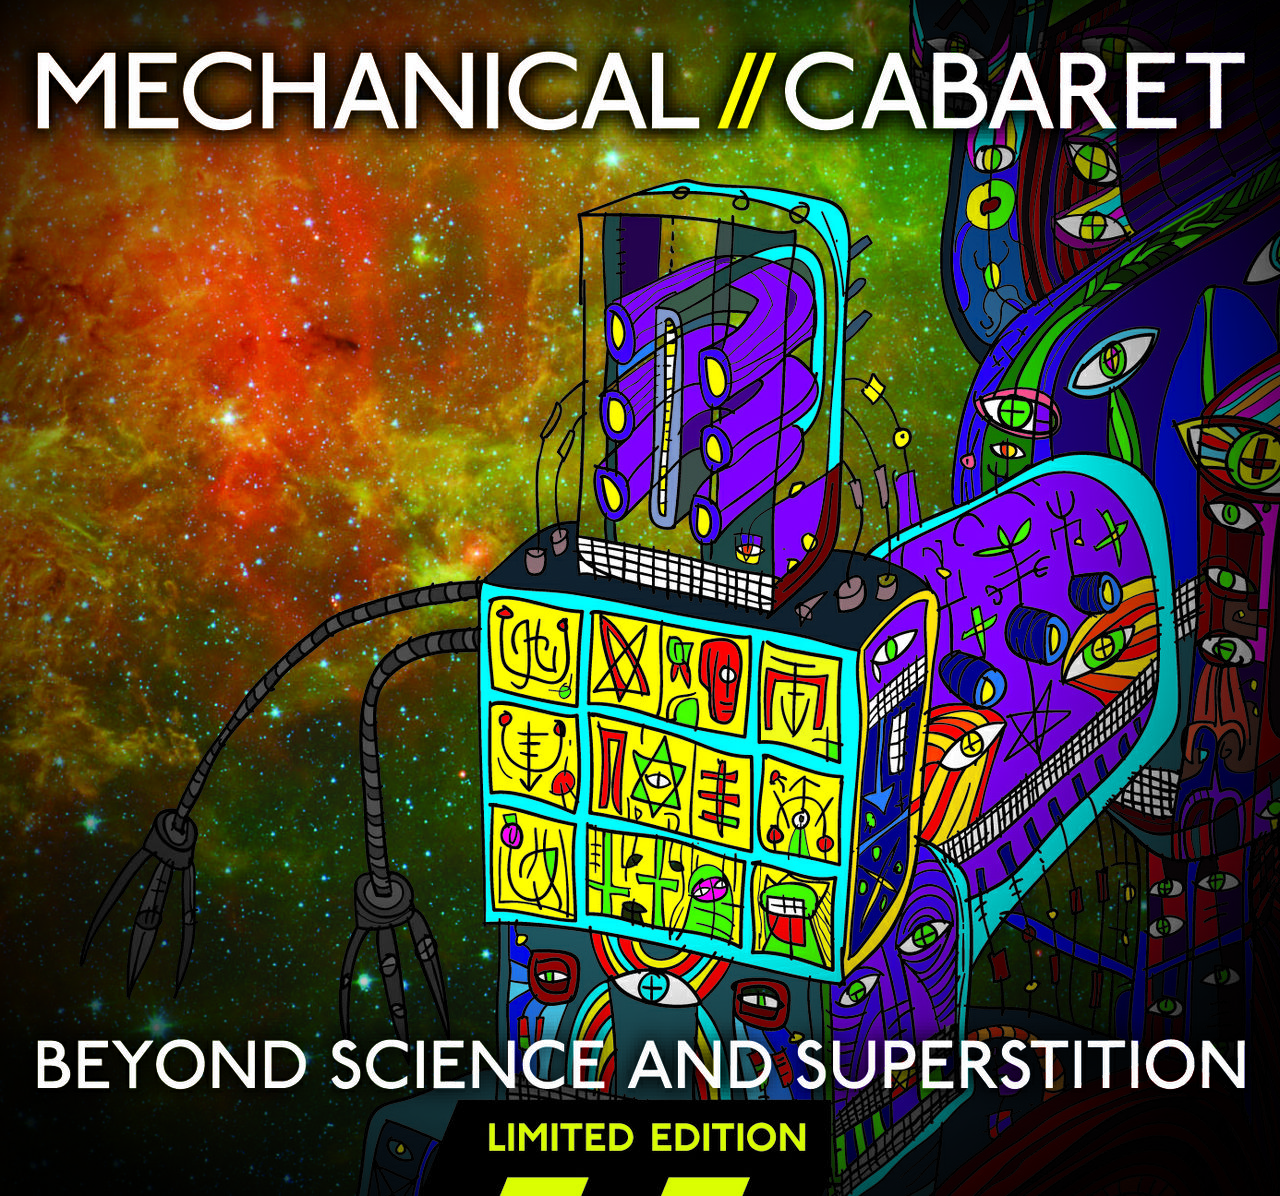 Mechanical Cabaret - Beyond Science And Superstition - Ltd Ed Album - 14 tracks